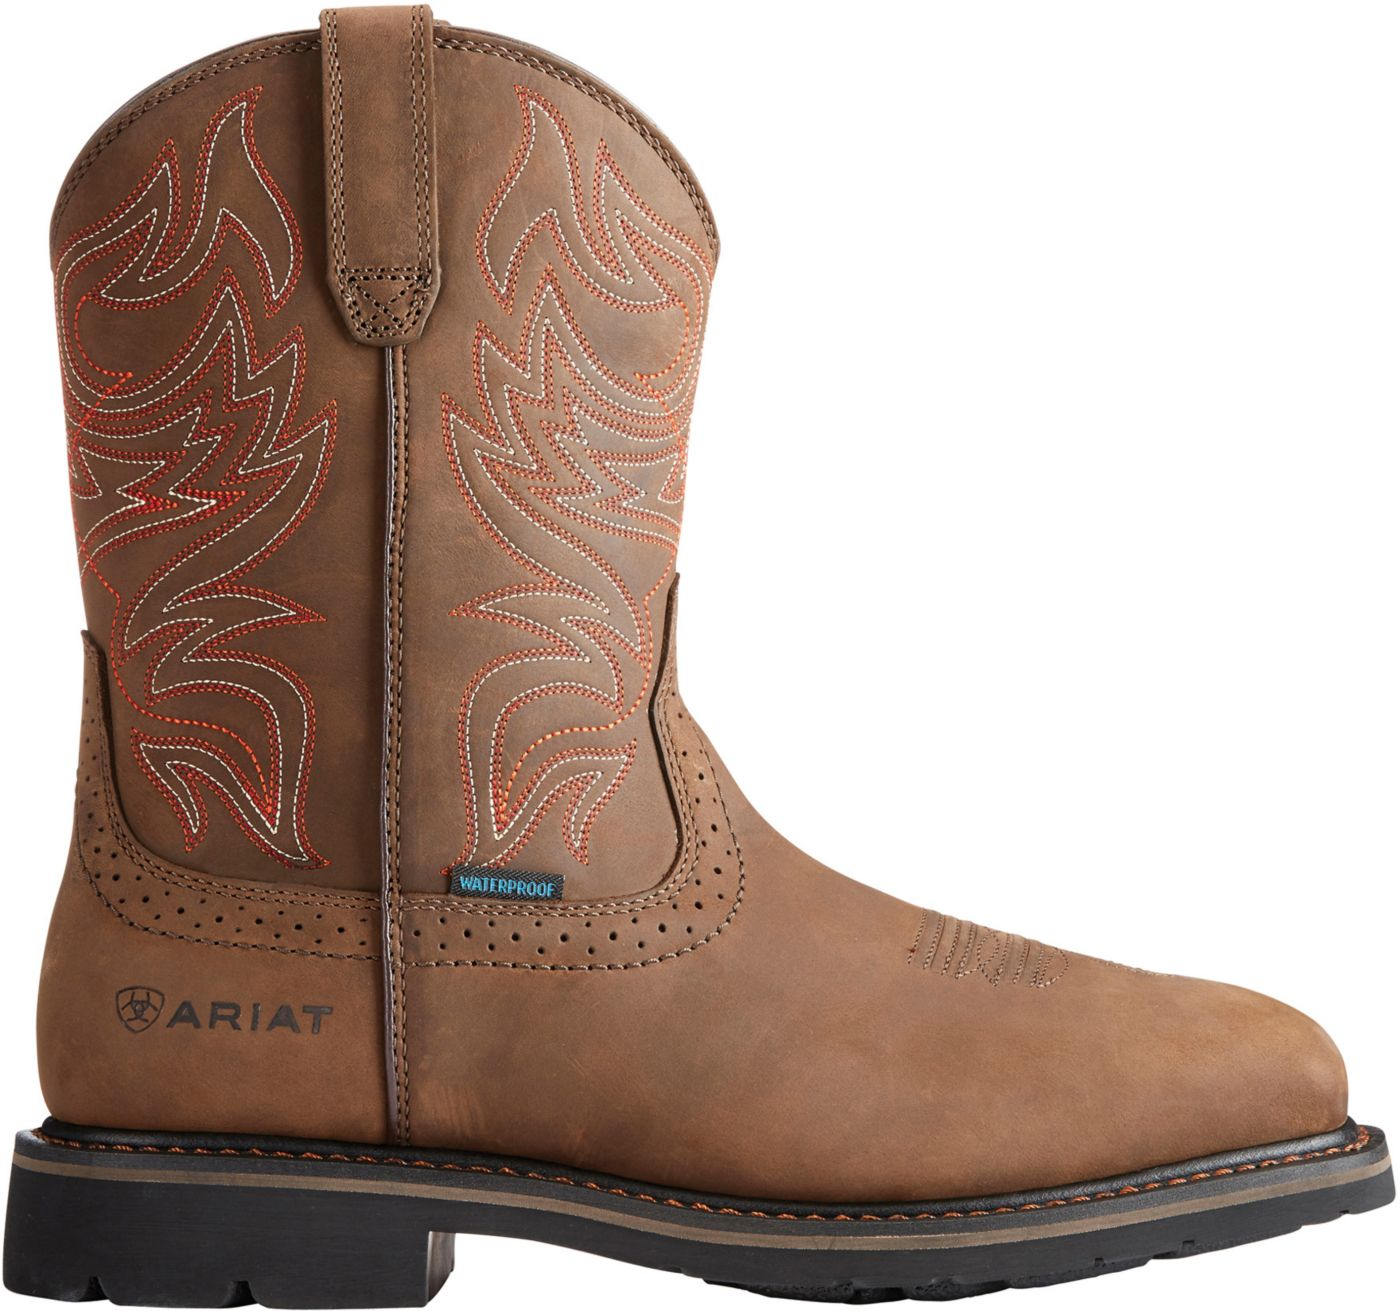 Ariat Men's Sierra Delta Waterproof Western Work Boots